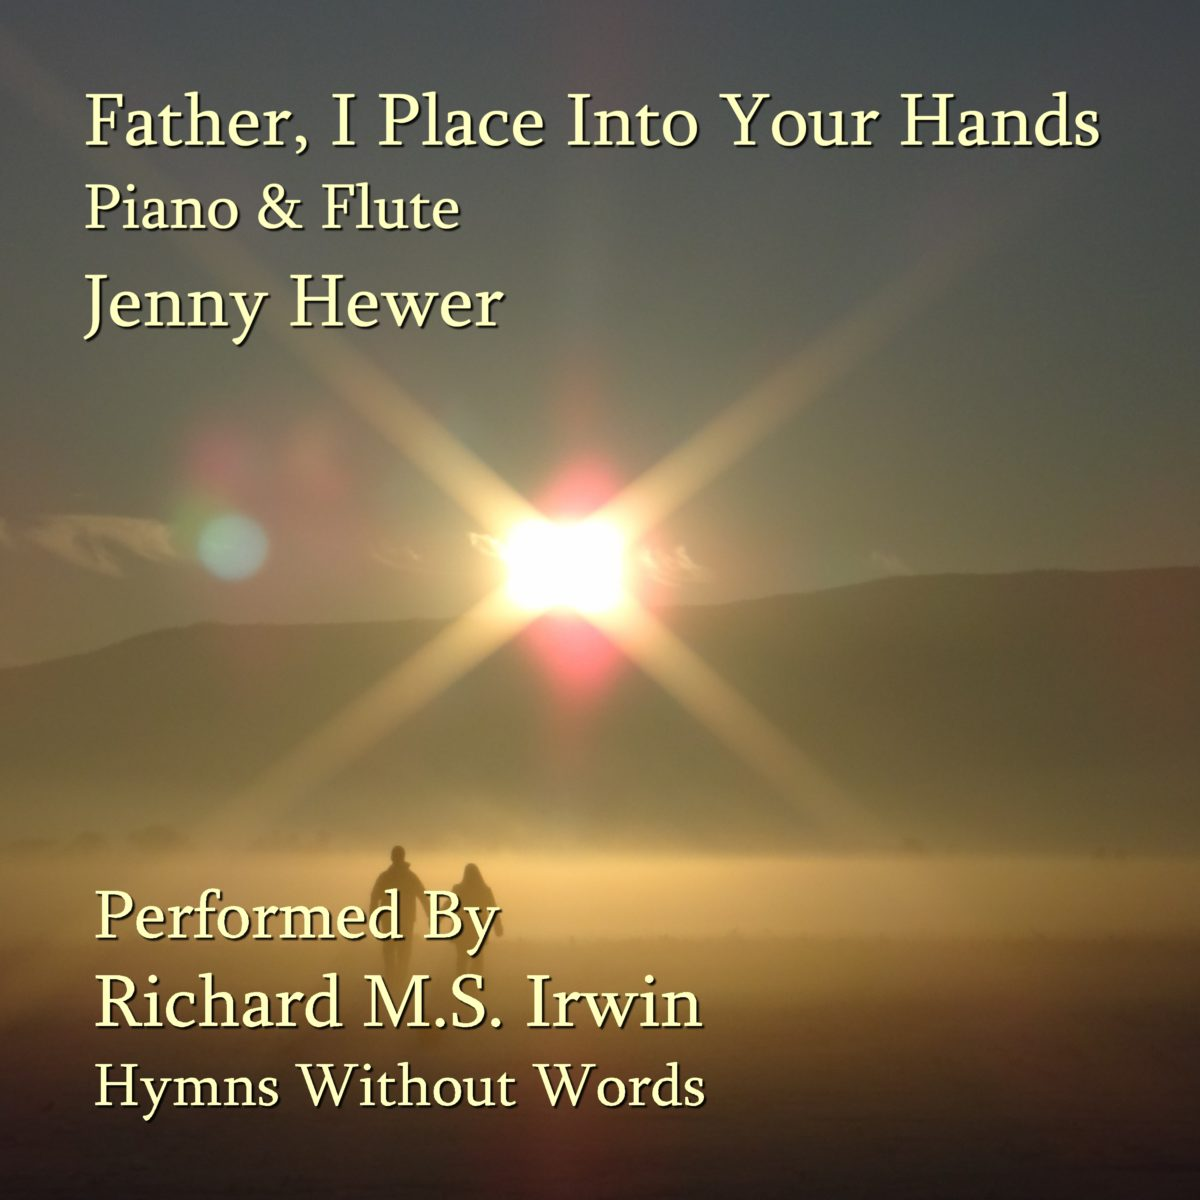 Father I Place Into Your Hands (Piano & Flute, 4 Verses)